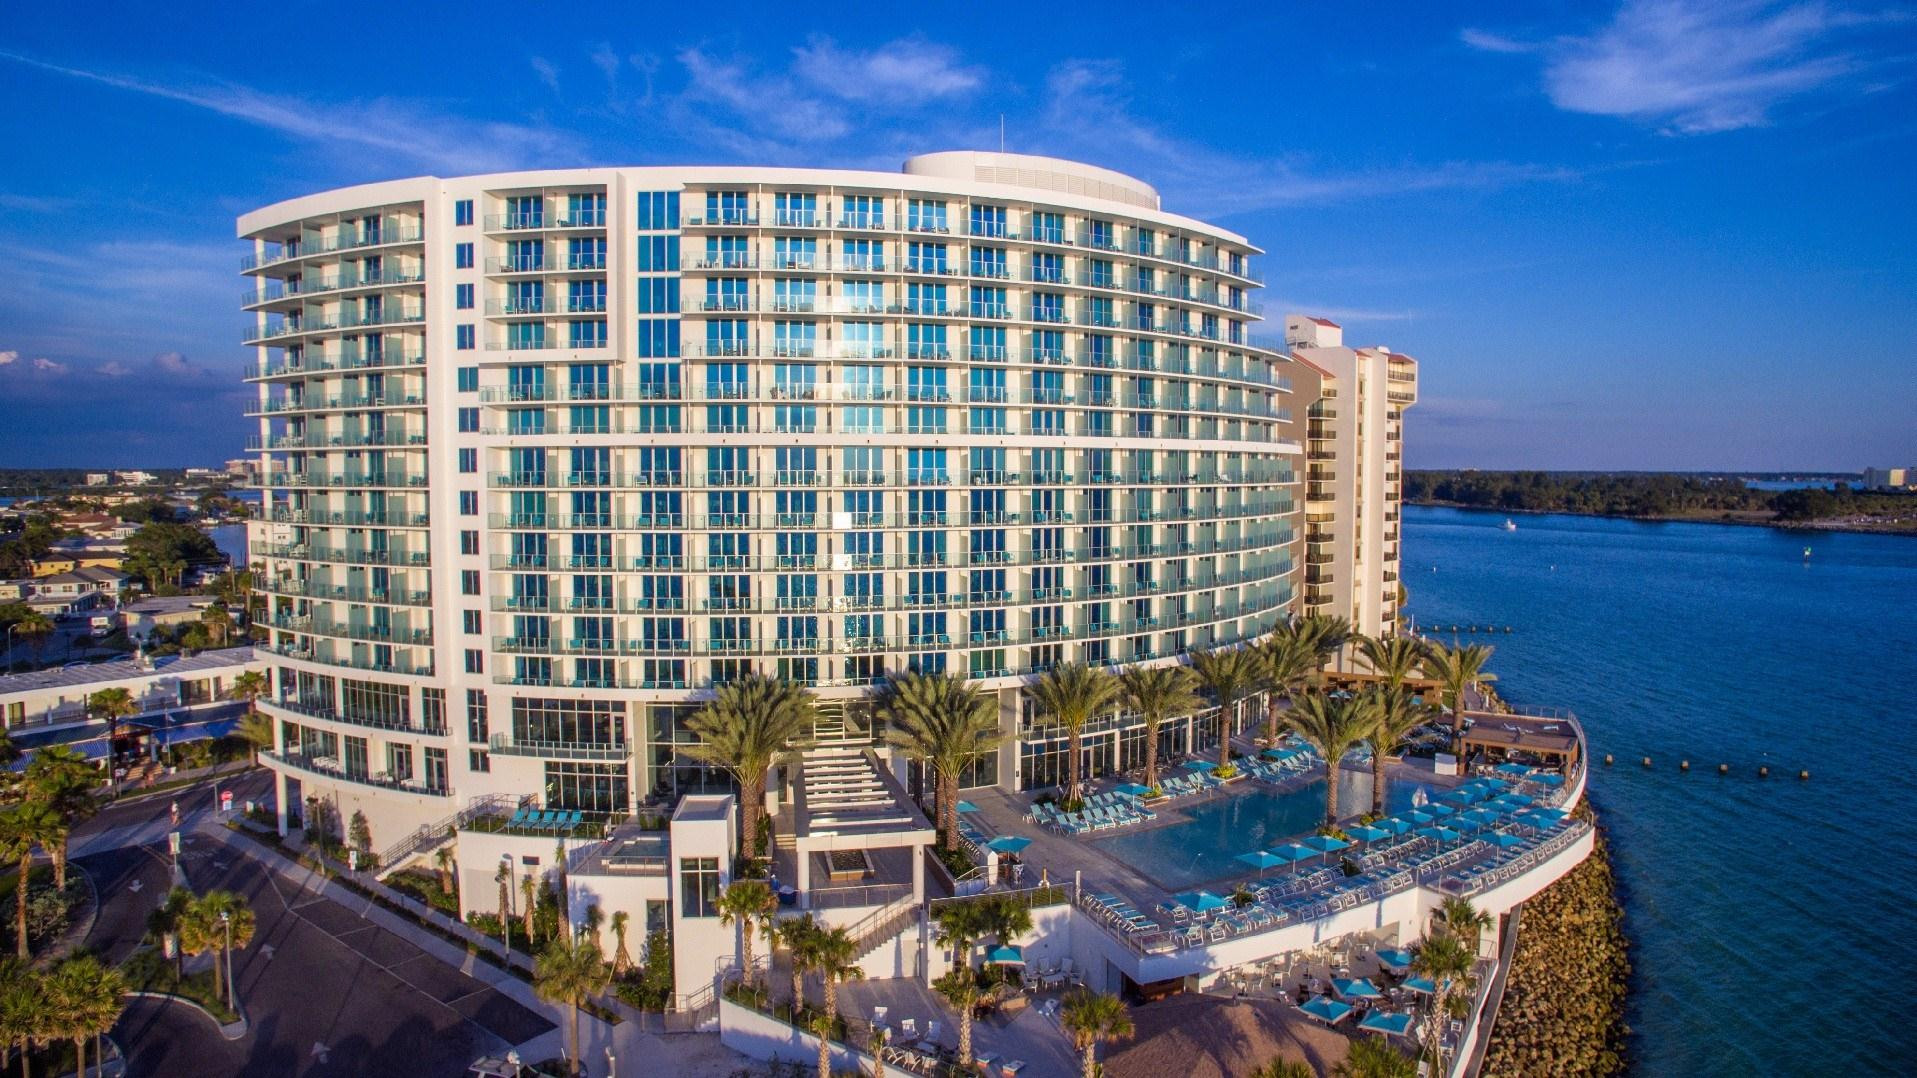 Meetings and events at Opal Sands Resort, Clearwater Beach